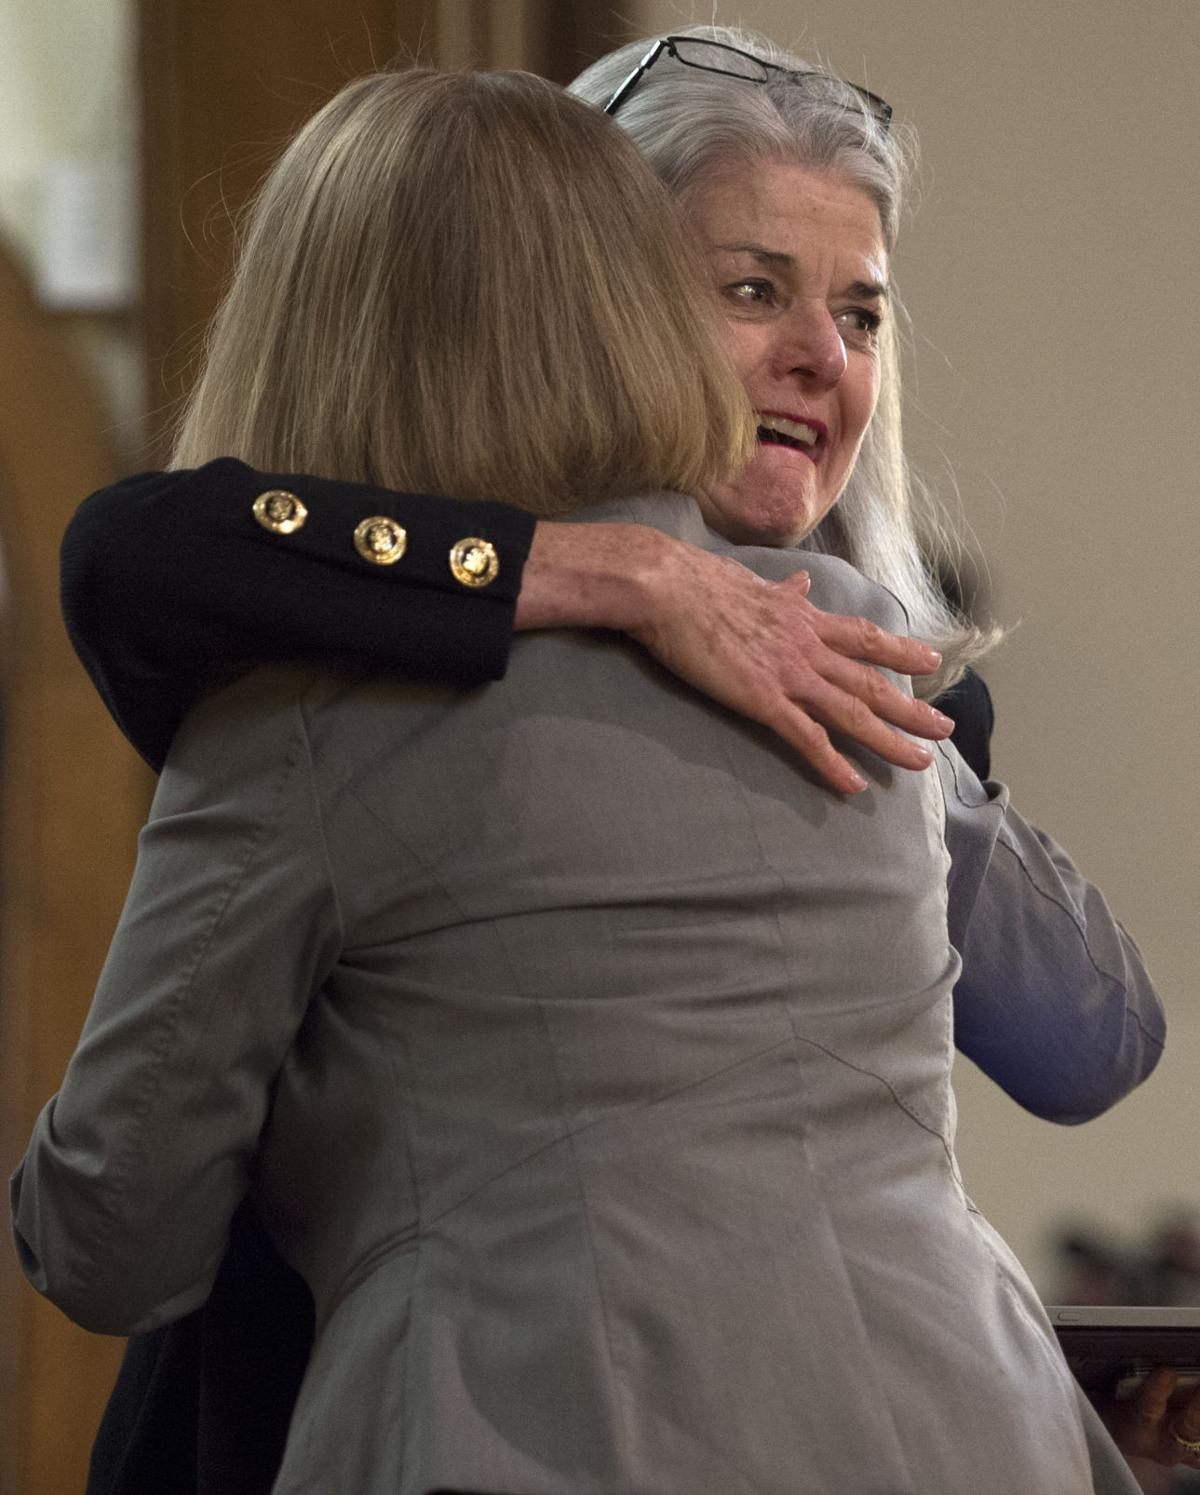 Vicki Cowart, the president and CEO of Planned Parenthood of the Rocky Mountians, receives a hug from Rev. Nori Rost before speaking Saturday, Nov. 28, 2015, during a vigil at the All Souls Unitarian Universalist Church in downtown Colorado Springs for the three killed in the shooting at the Planned Parenthood clinic Friday, Nov. 27, 2015. (The Gazette, Christian Murdock)